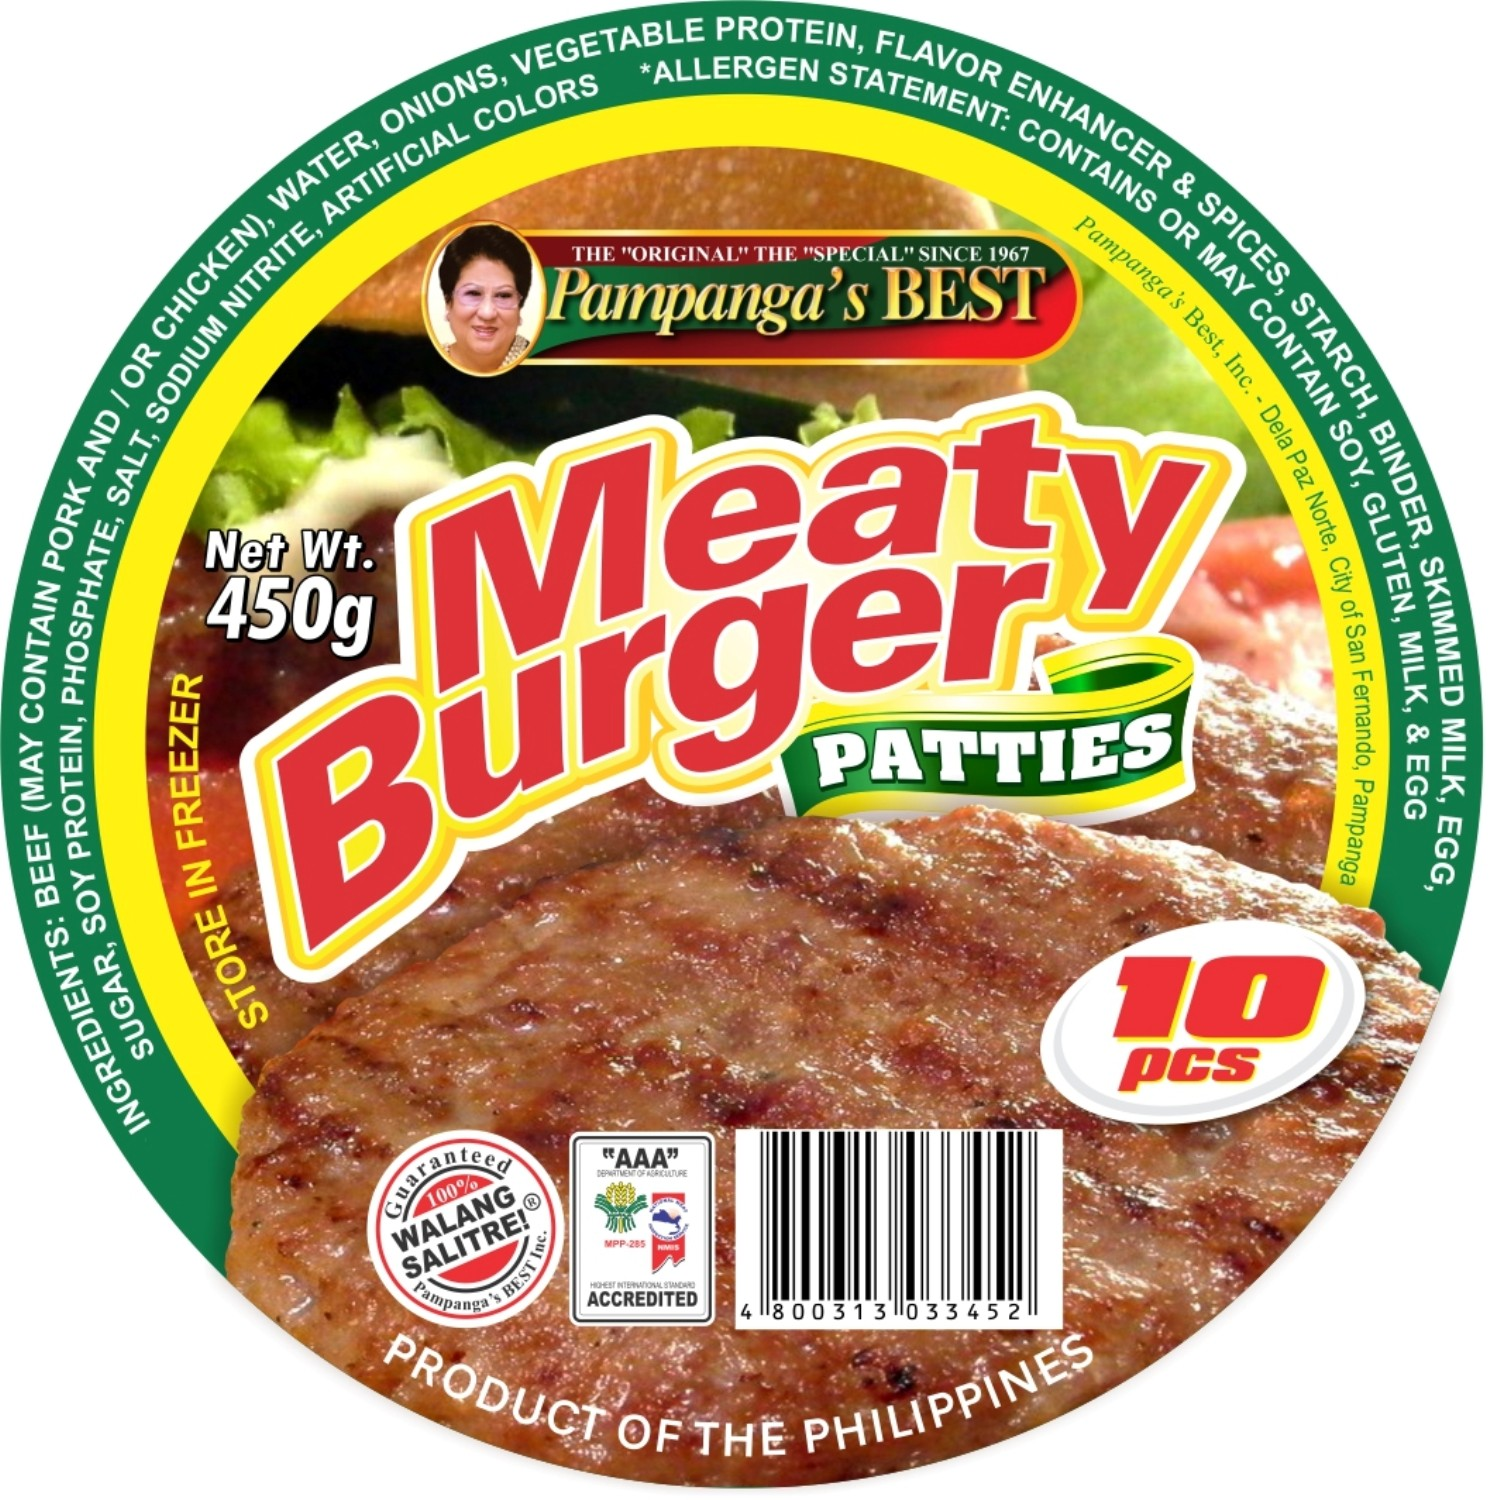 Meaty Burger - 10pcs